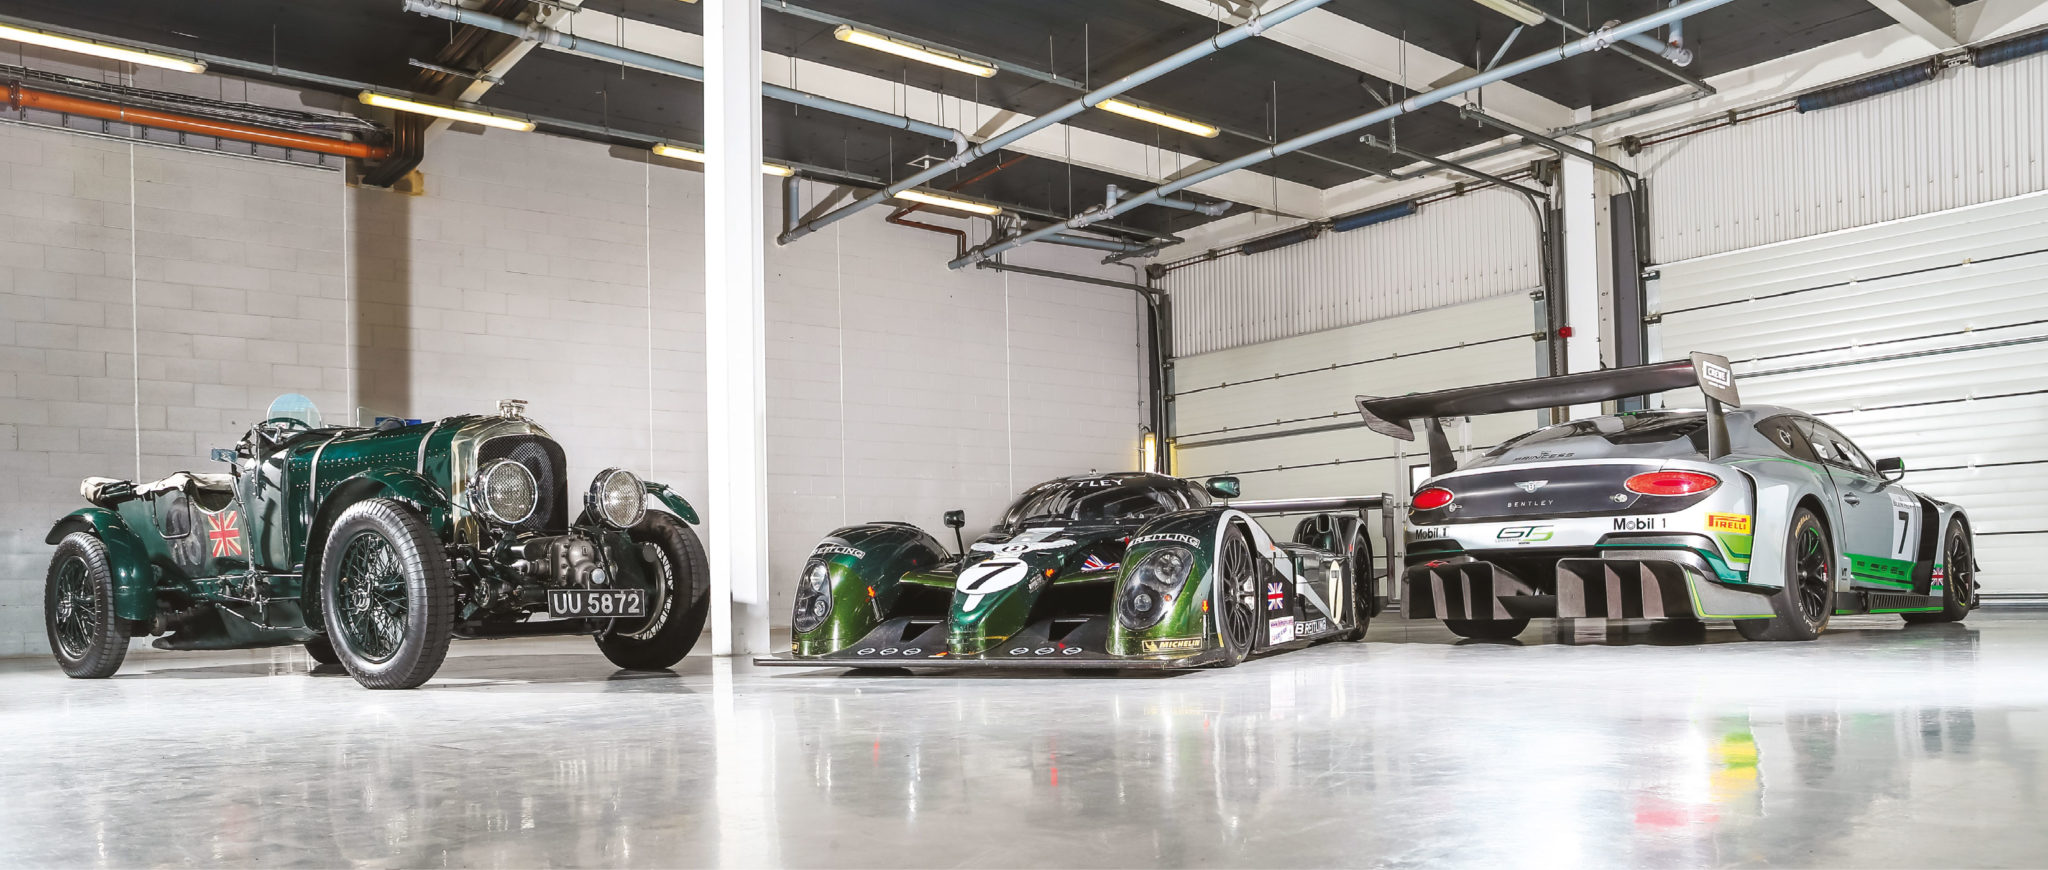 Sir Henry Birkin's Blower Bentley, the Le Mans-winning Speed 8 and the new Continental GT3 – together at last